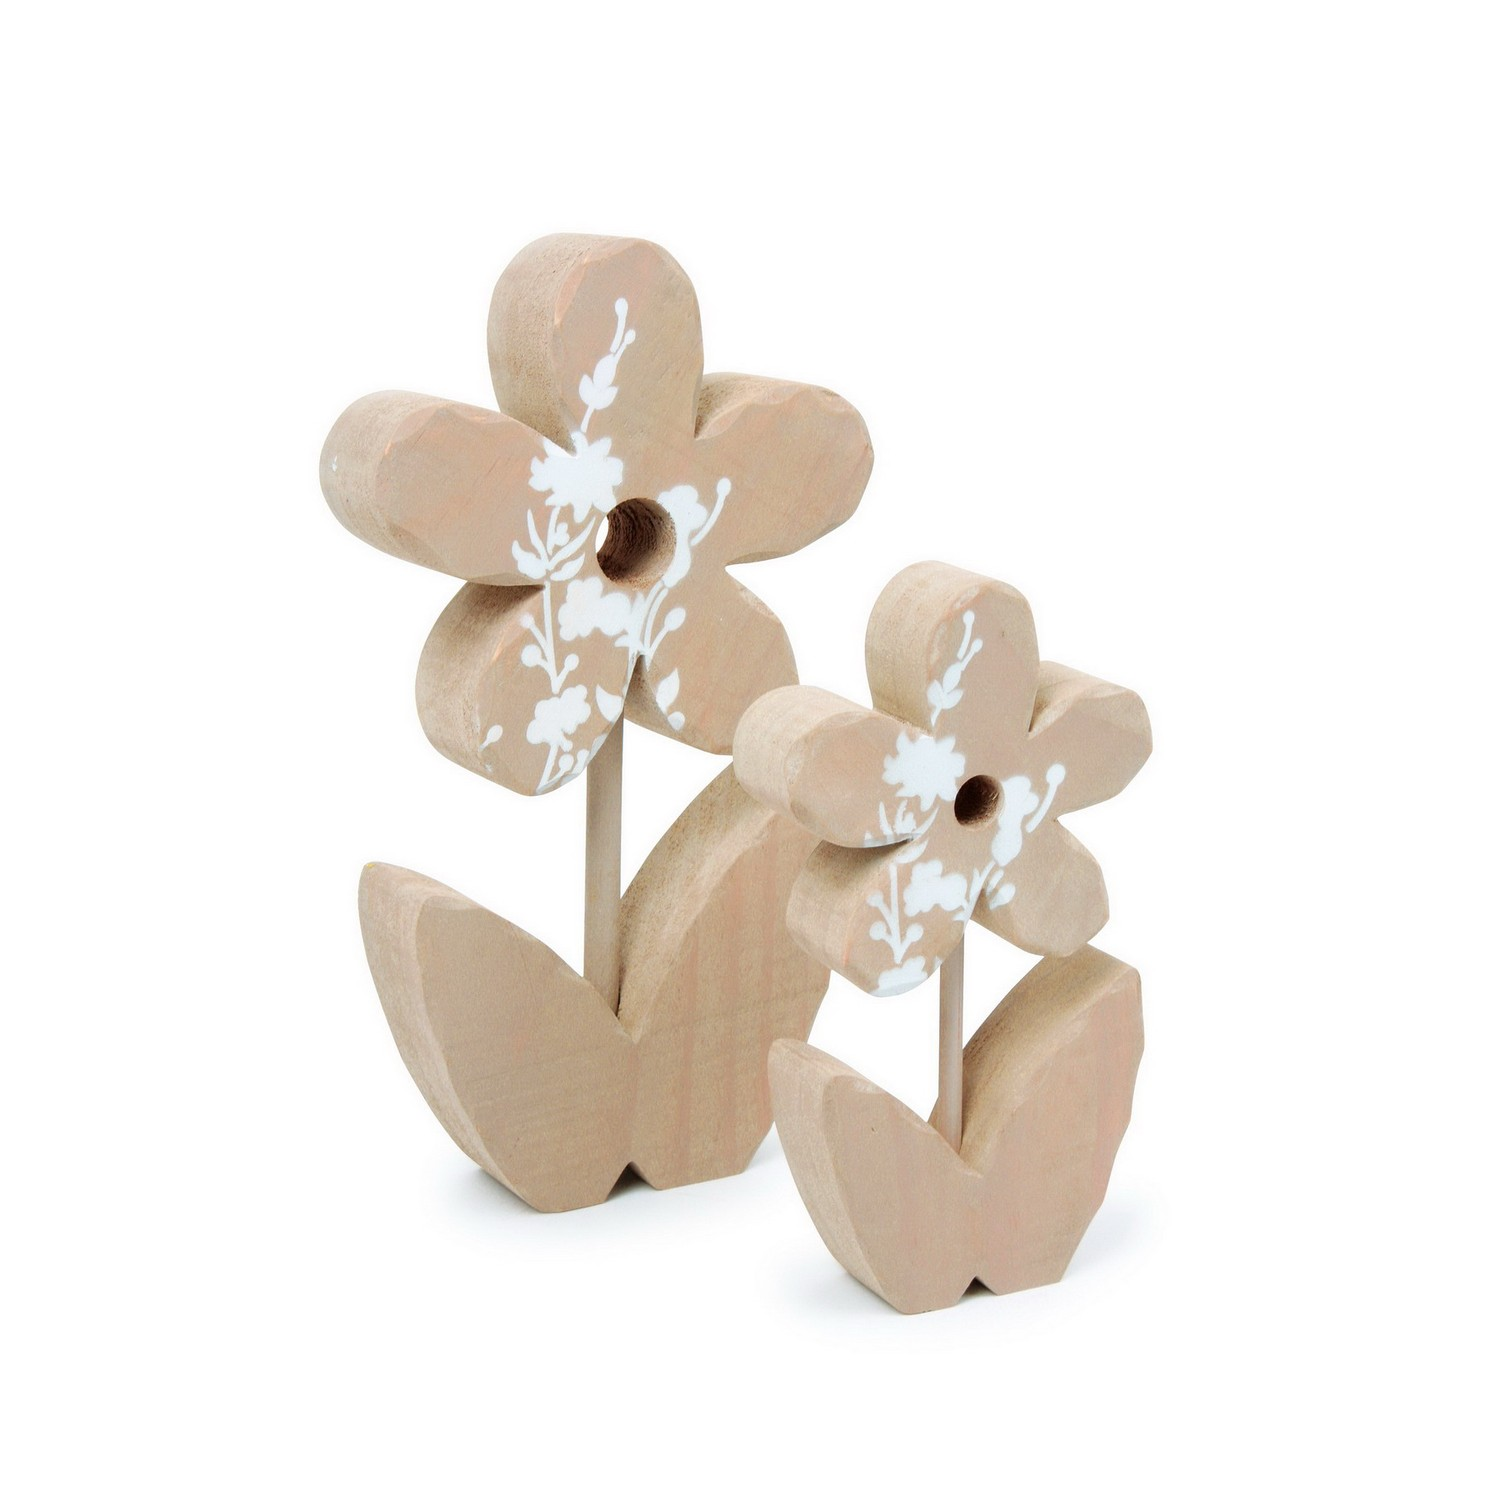 Small foot 5678 set deko blumen aus holz natur 2 teilig for Dekoration blumen